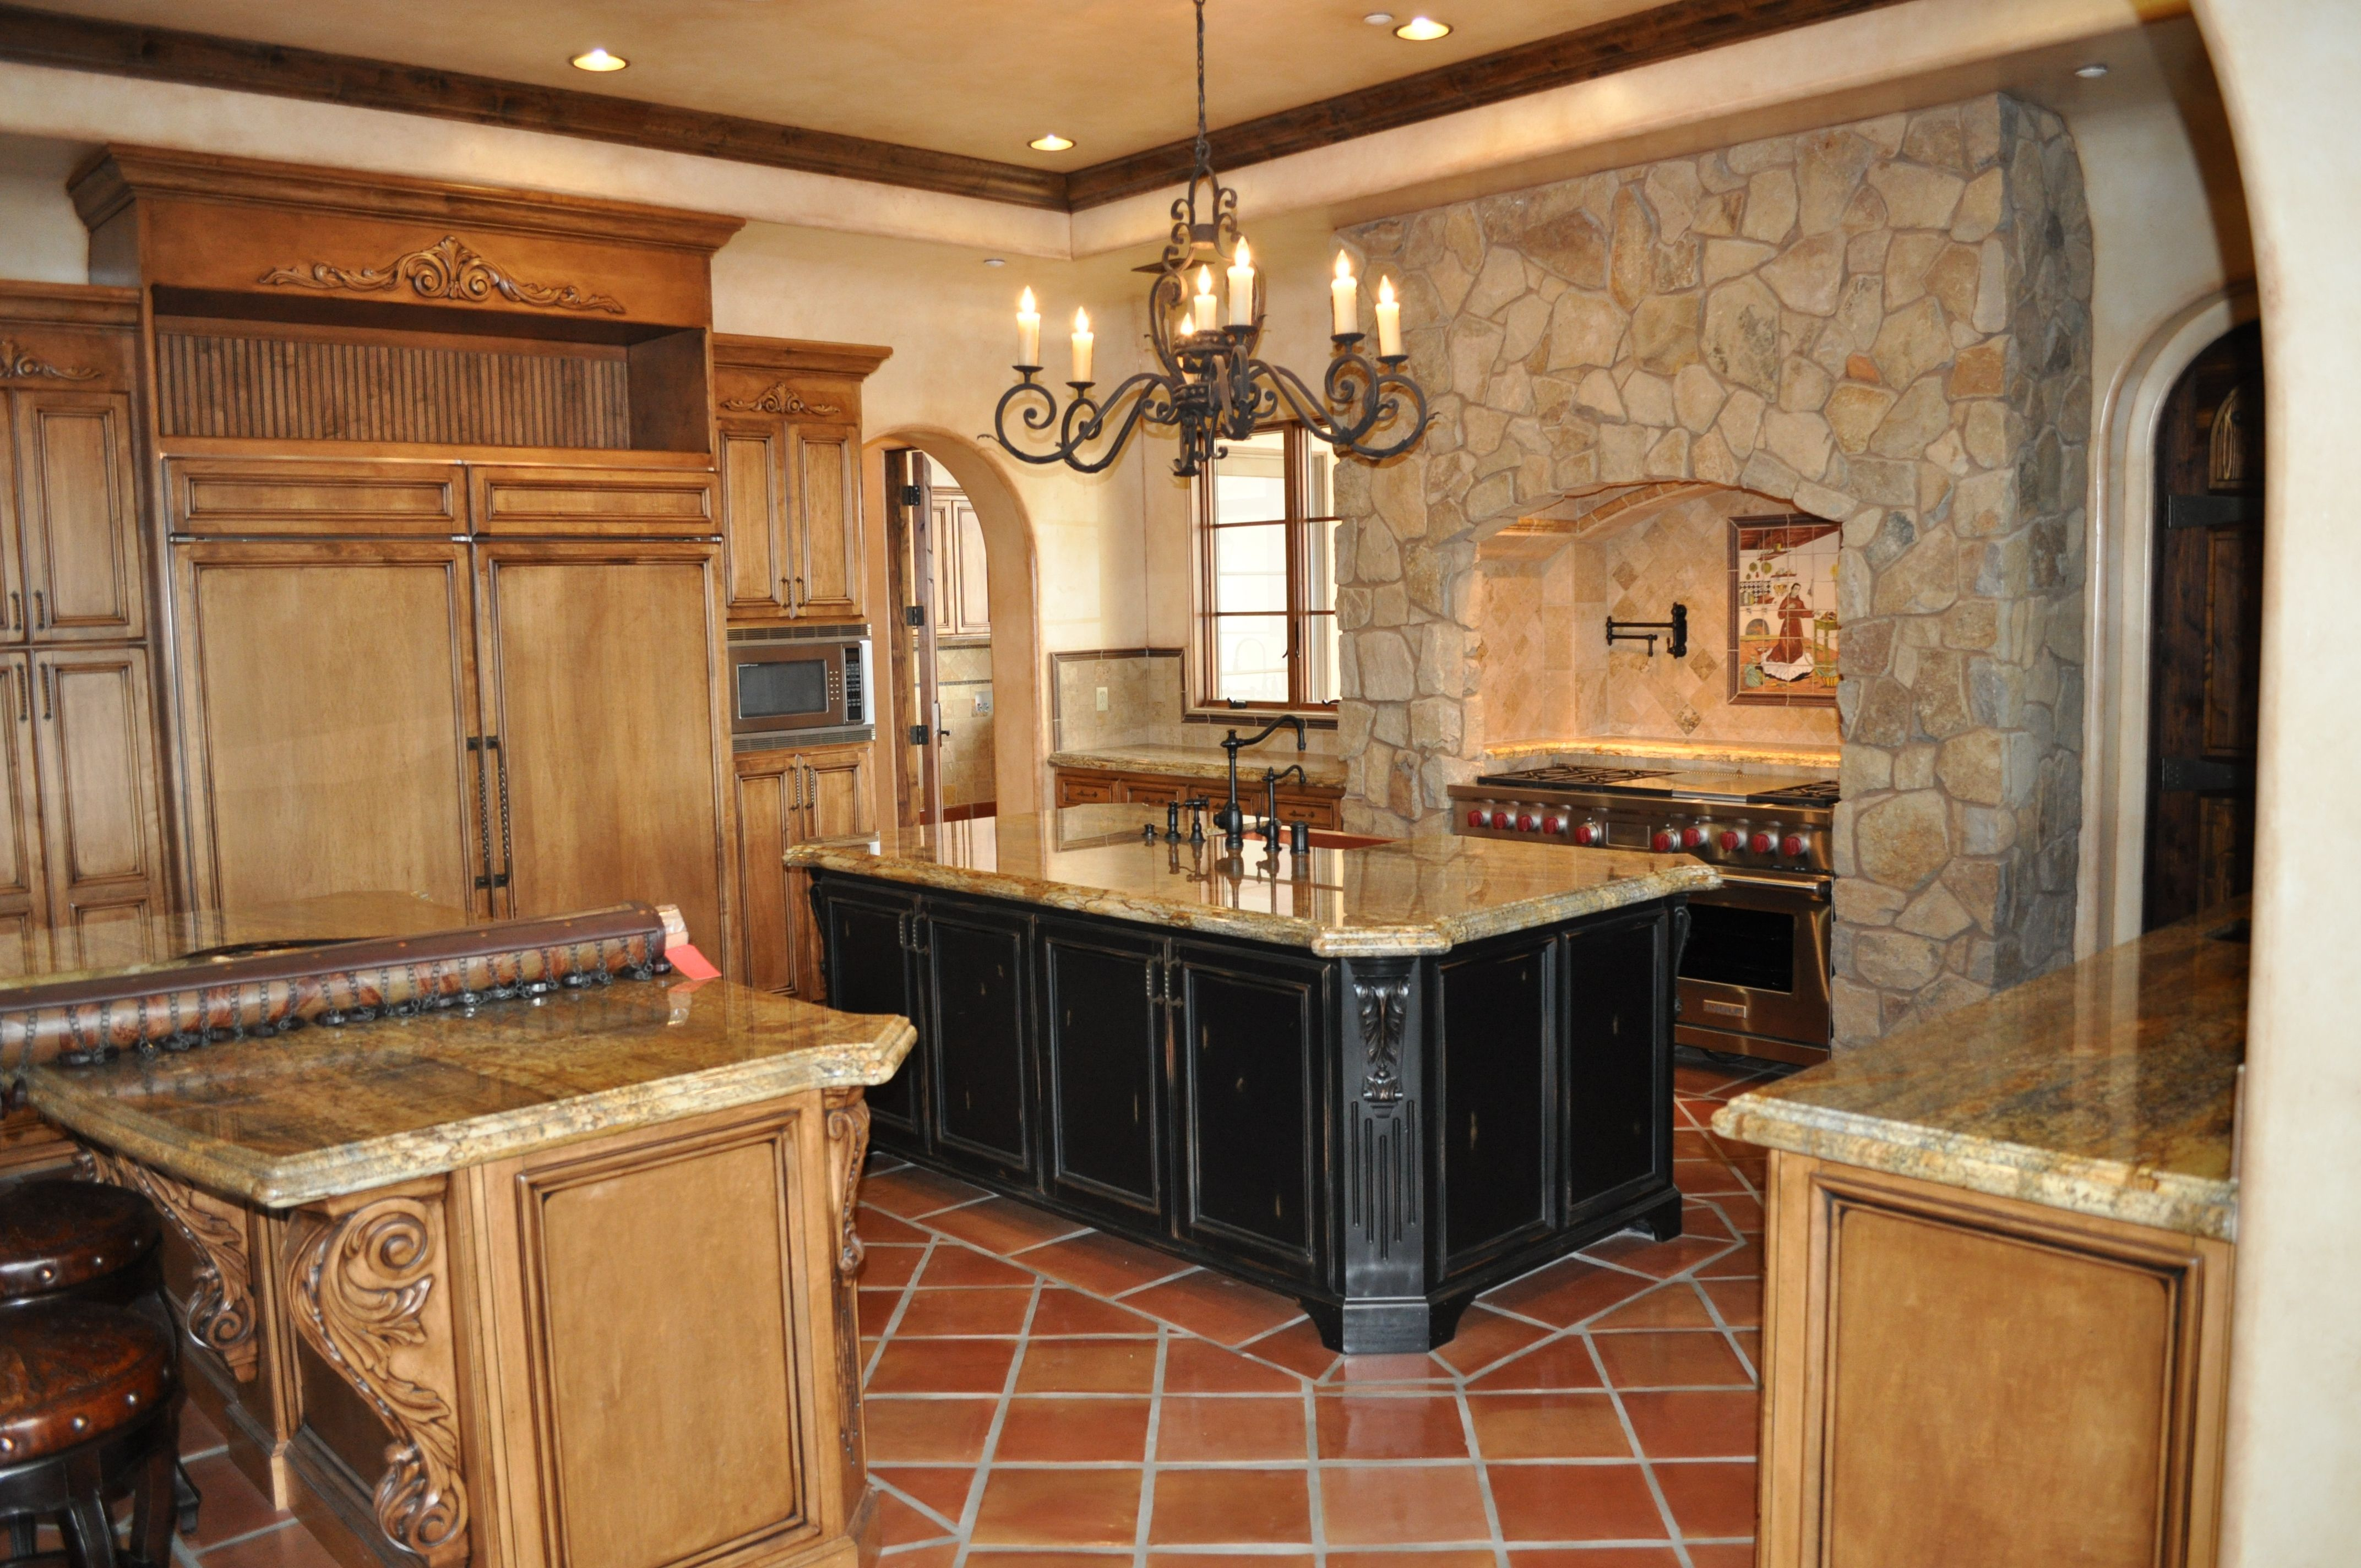 Spanish Kitchen Spanish Style Kitchens Pinterest Spanish Kitchen Kitchens And Spanish Style